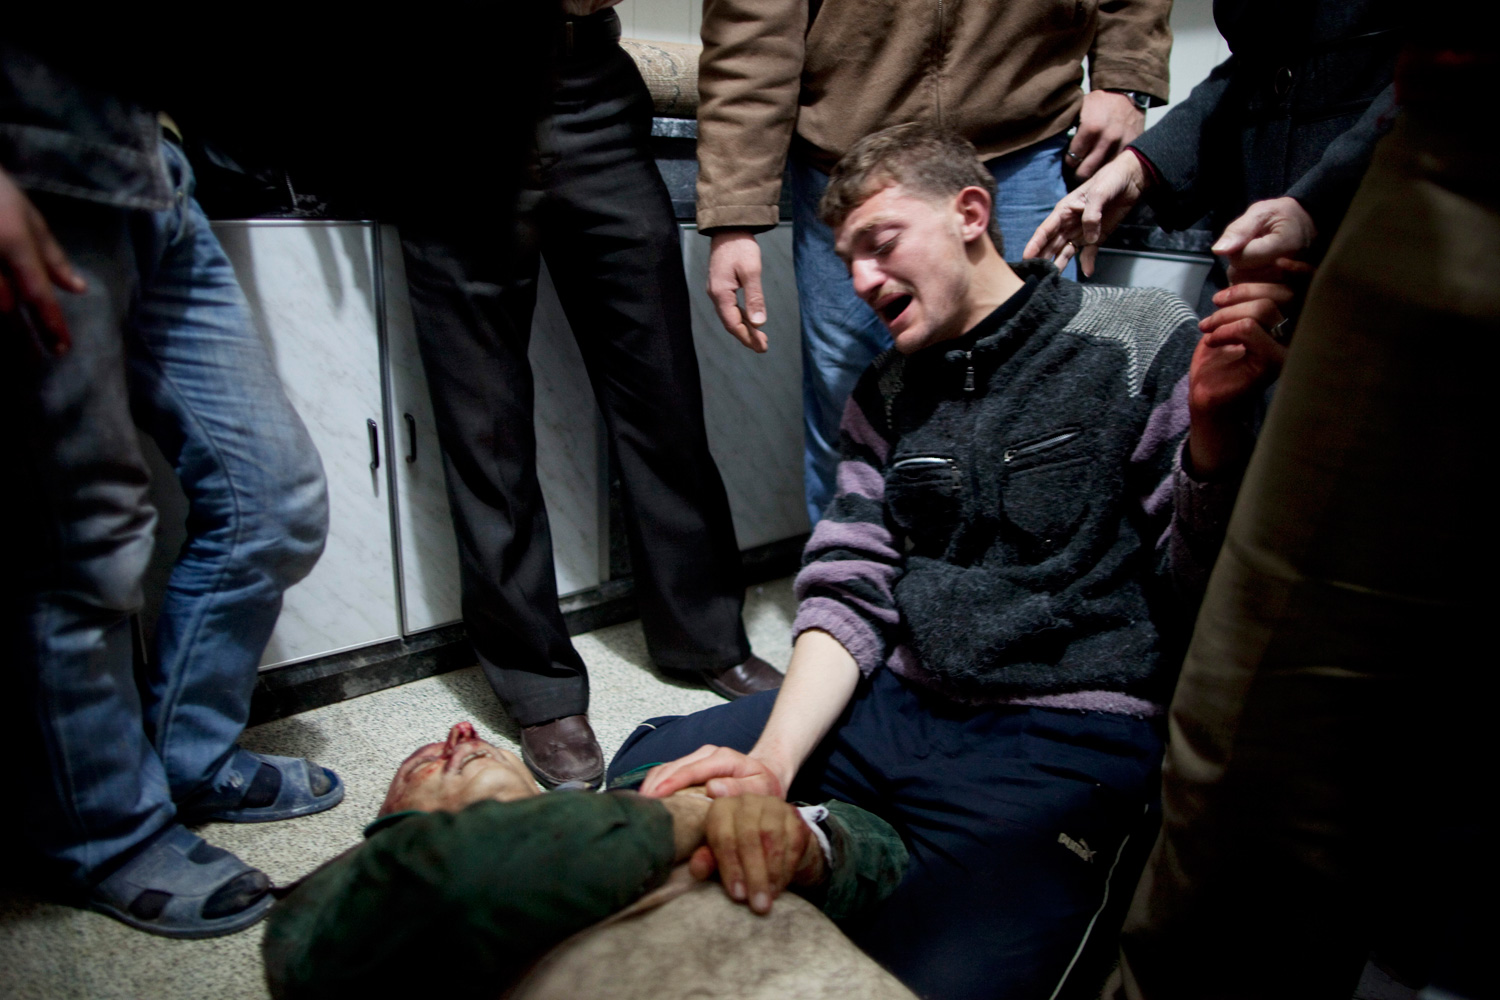 March 8, 2012. A relative mourns for Mohammed Munir Zidani, 59, minutes after he was killed by a Syrian Army sniper near a checkpoint in Idlib, north Syria.